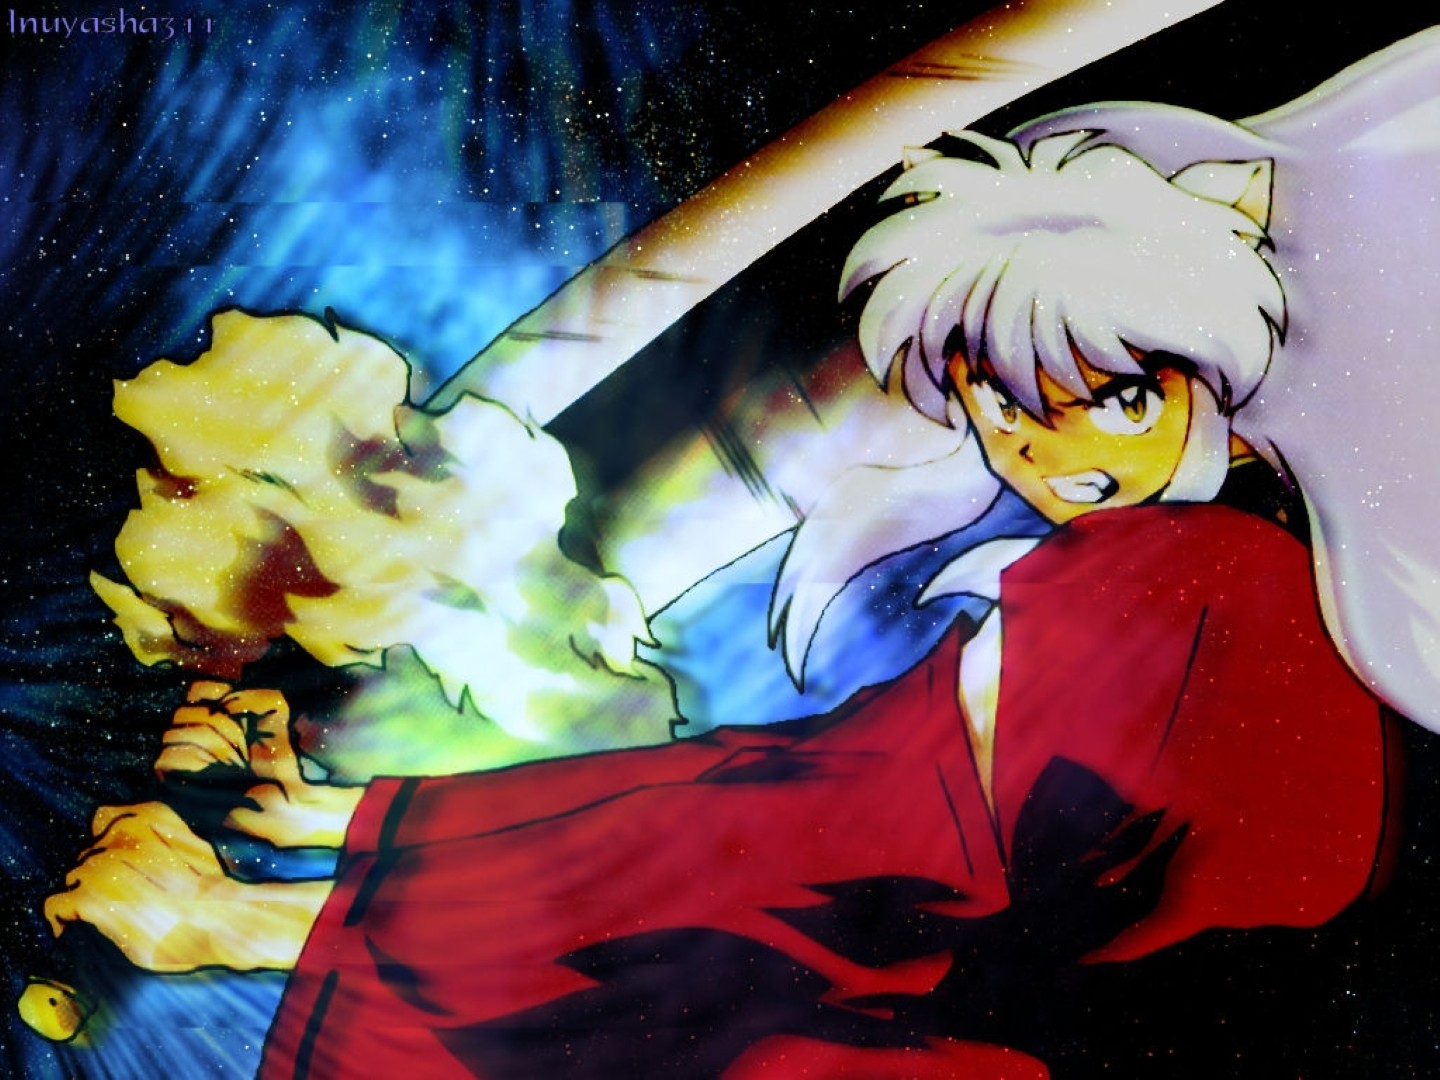 Inuyasha And His Sword Tessaiga Wallpaper And Background Image